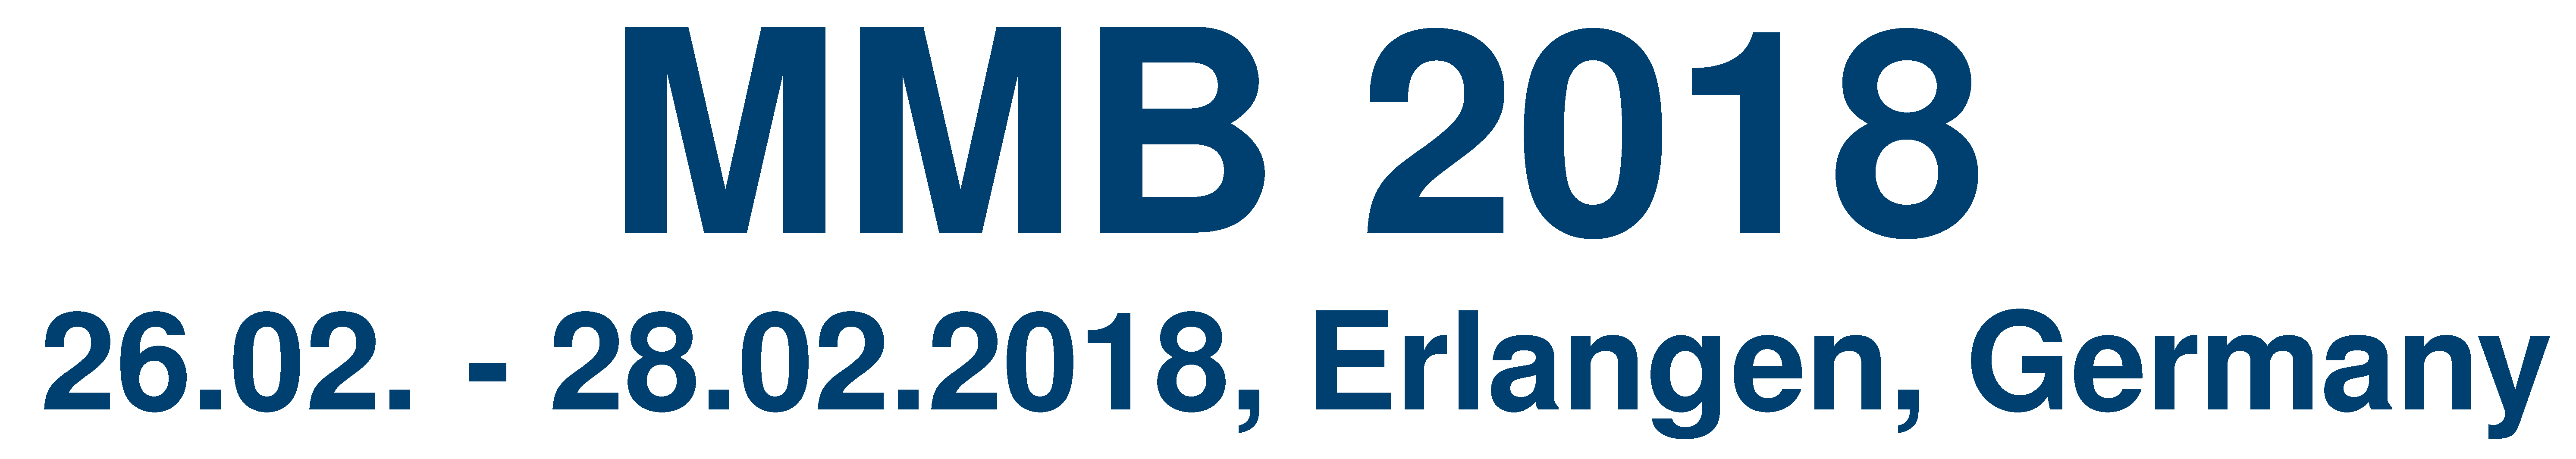 "Zum Artikel ""Workshop zu Smart Cities: challenges and opportunities (CfP zur #MMB2018)"""